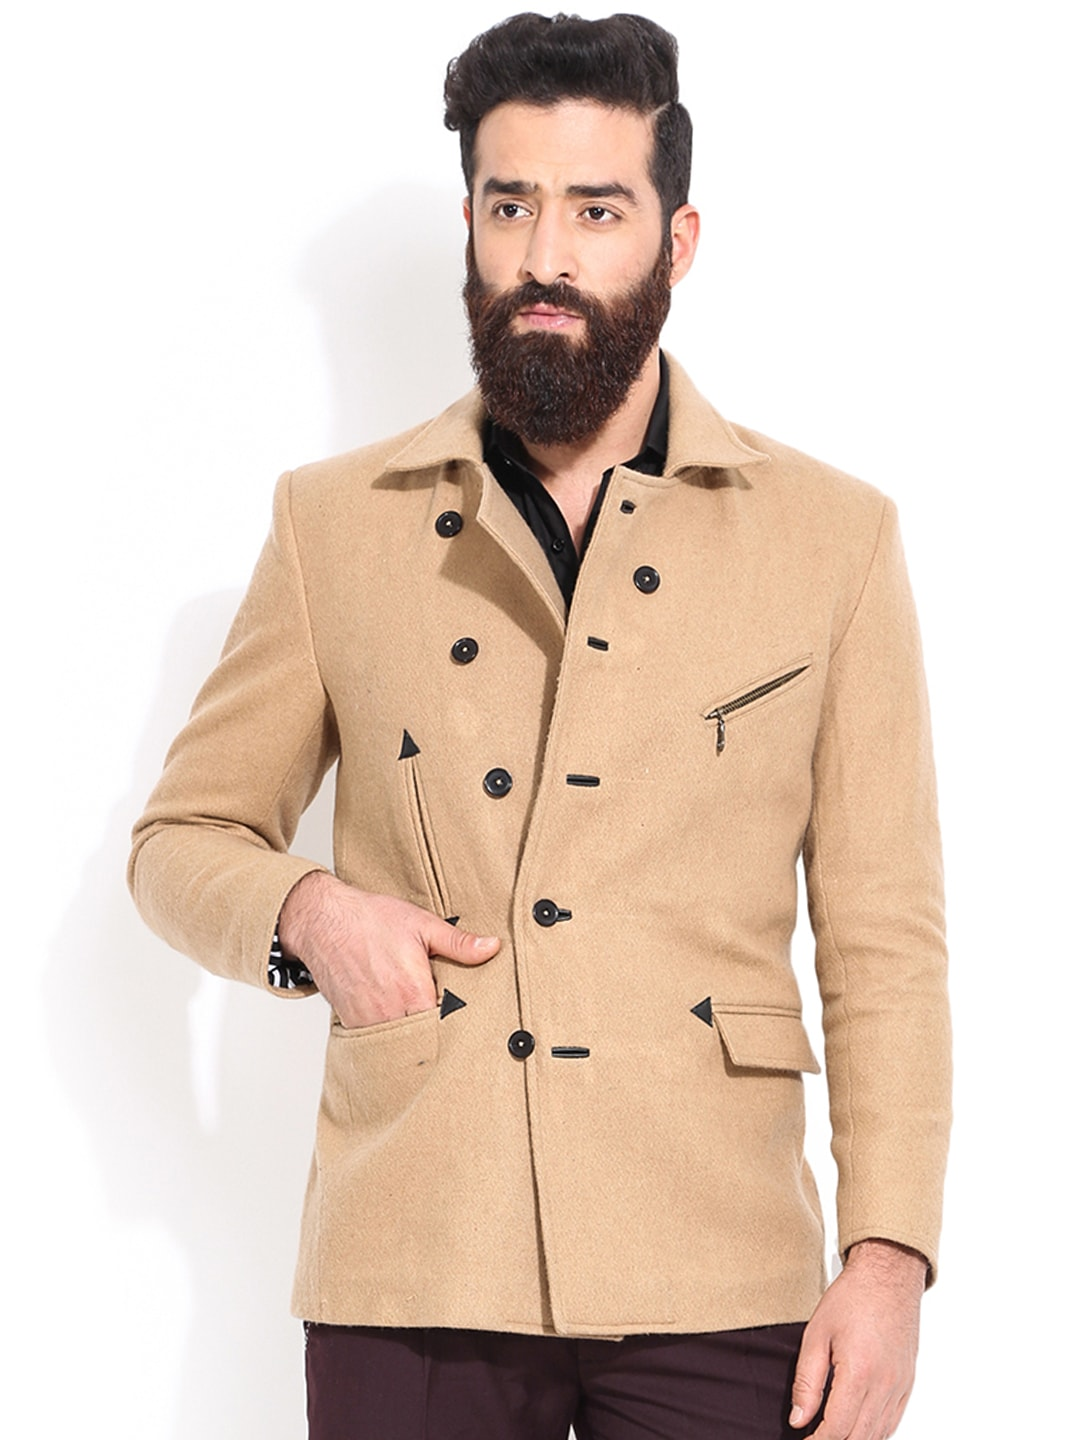 MR BUTTON Beige Slim Fit Tailored Jacket image